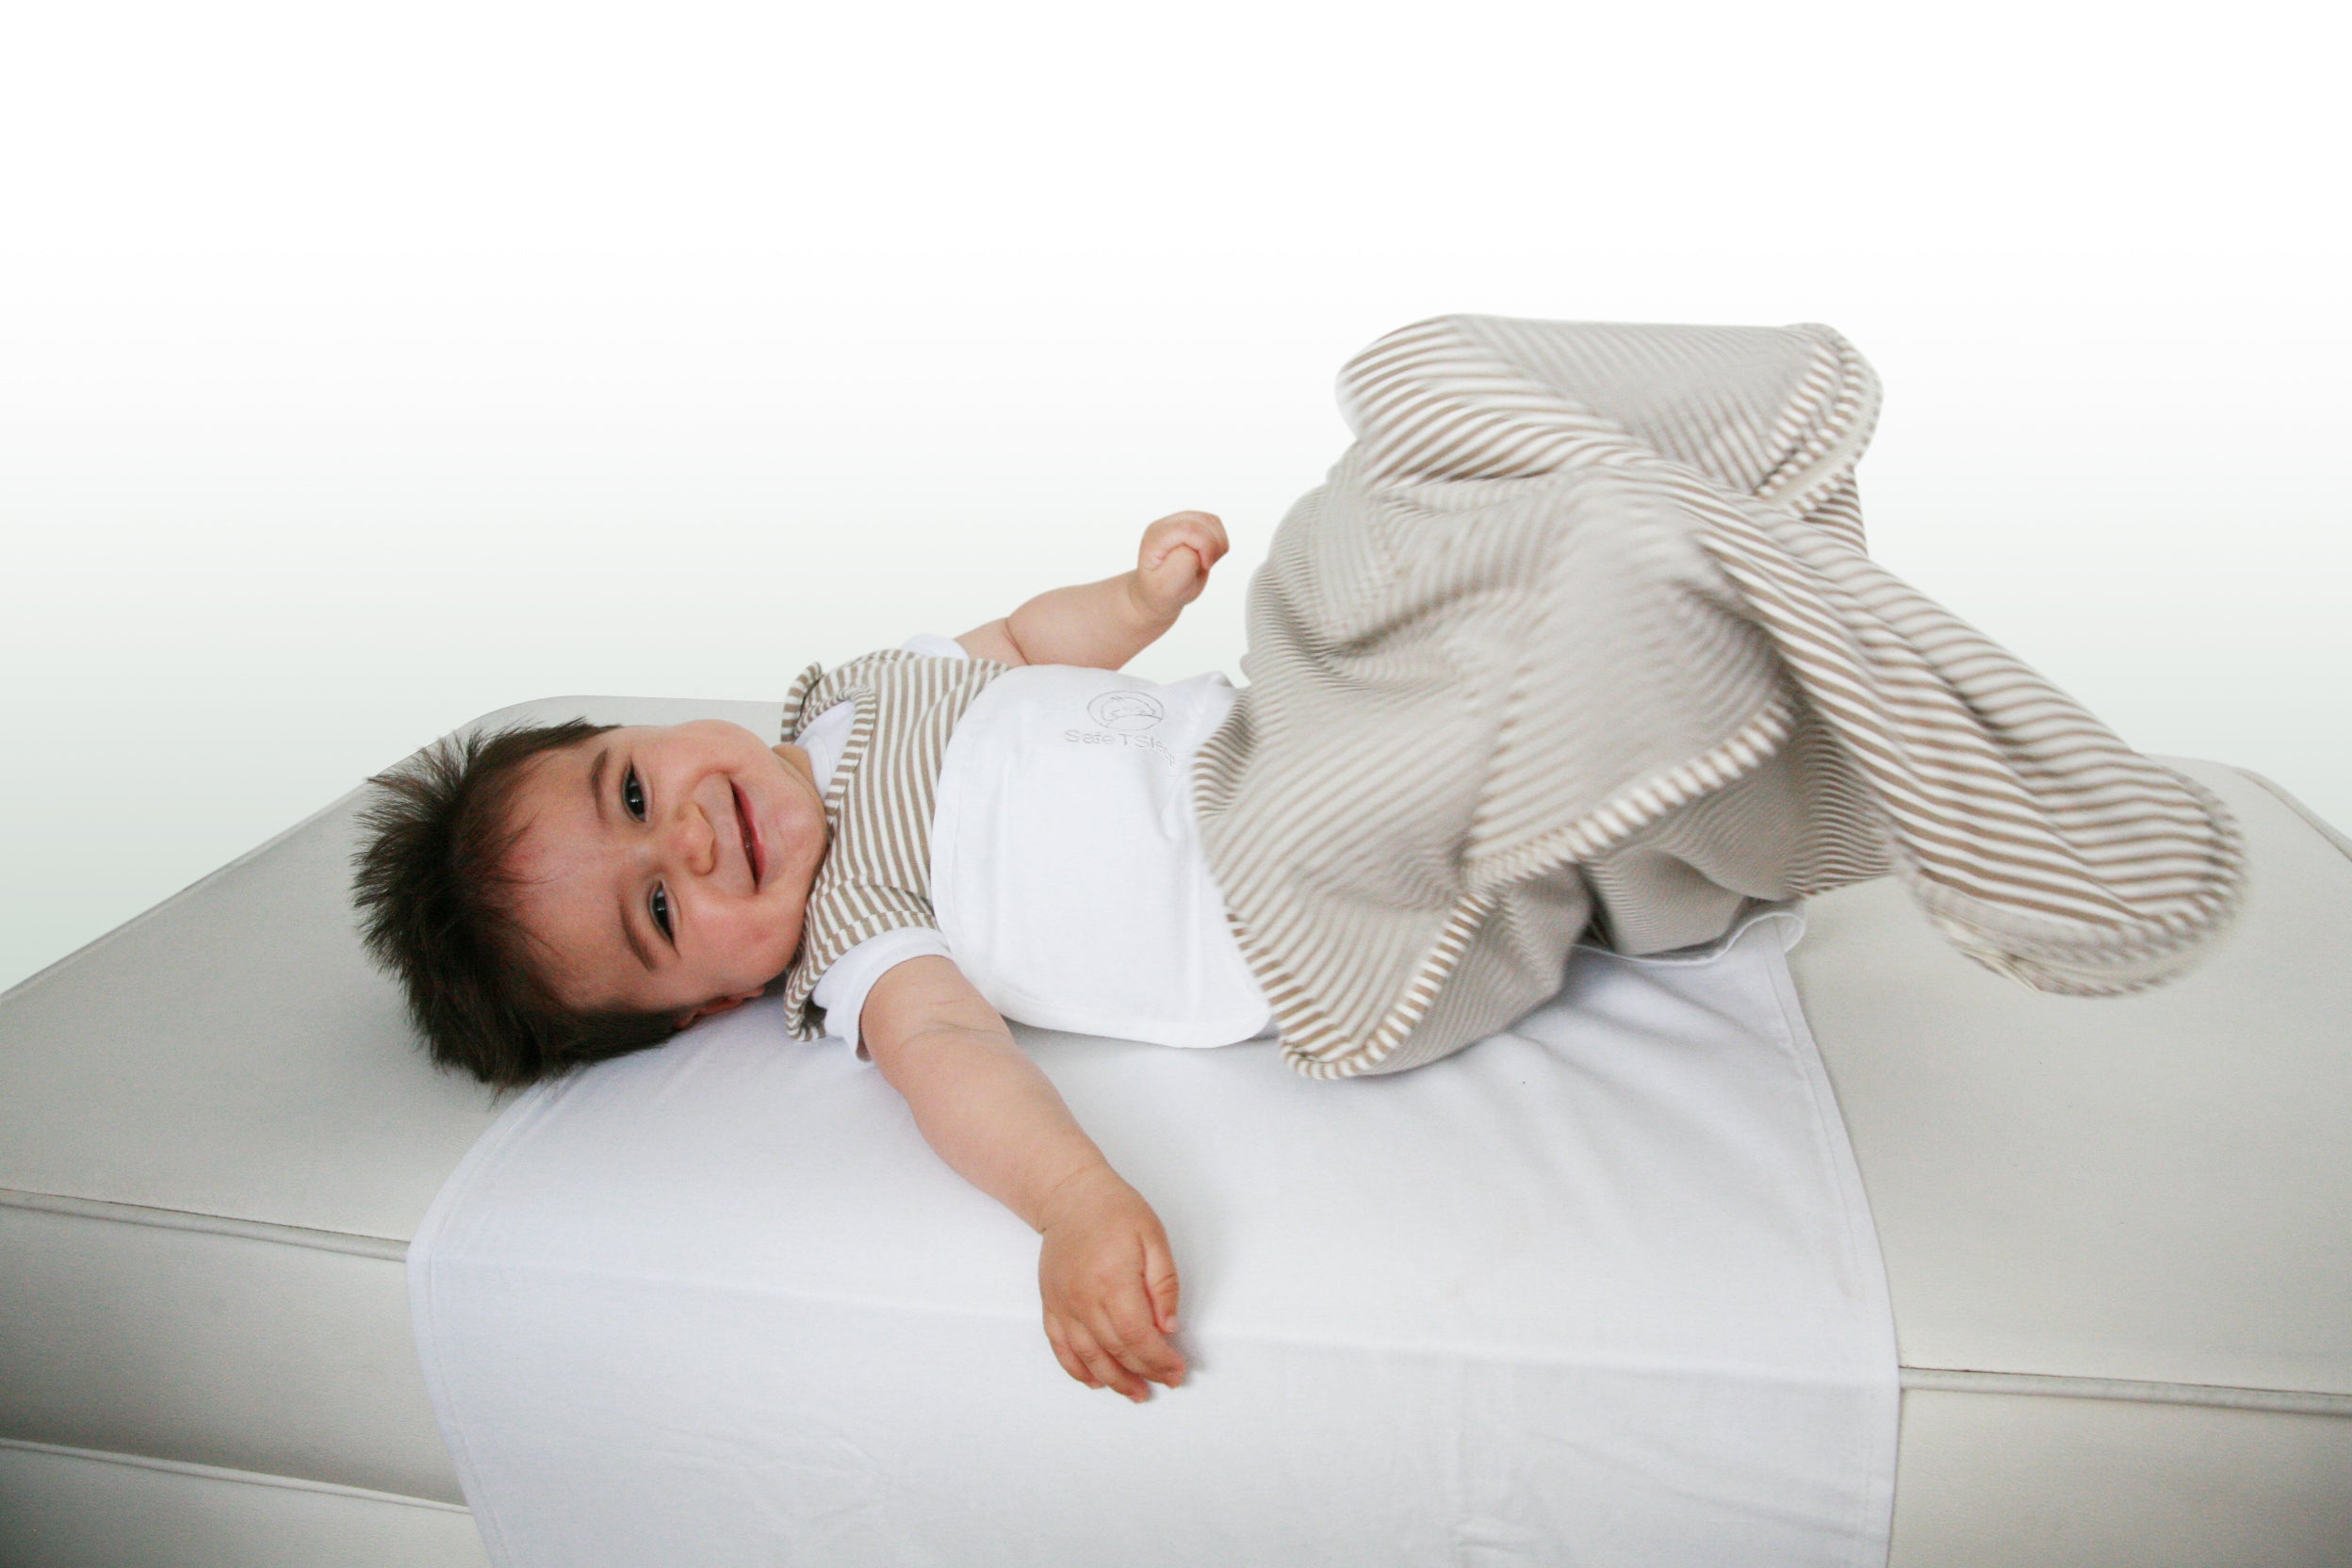 Sleepwrap baby swaddle in a single bed